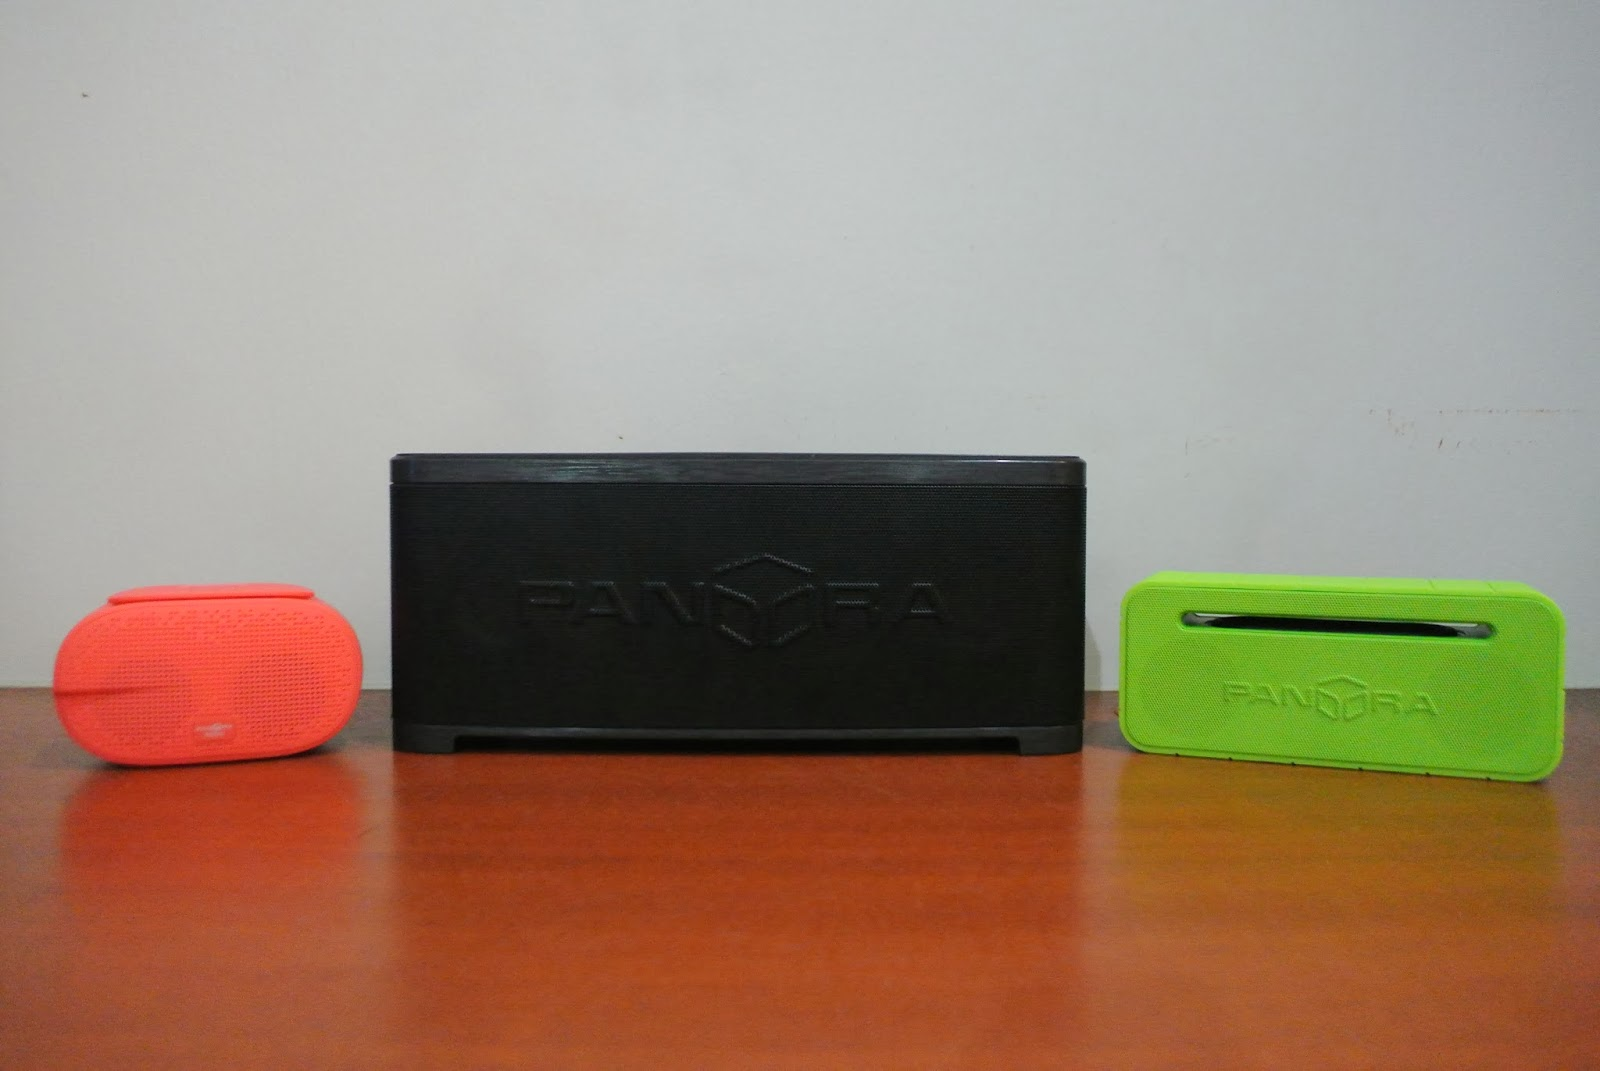 Discover Your Gadget Dygadget Sonicgear Pandora 3 Mini Quatro 2 Super Loud 20 Usb Speaker By Green From The Left Micro And